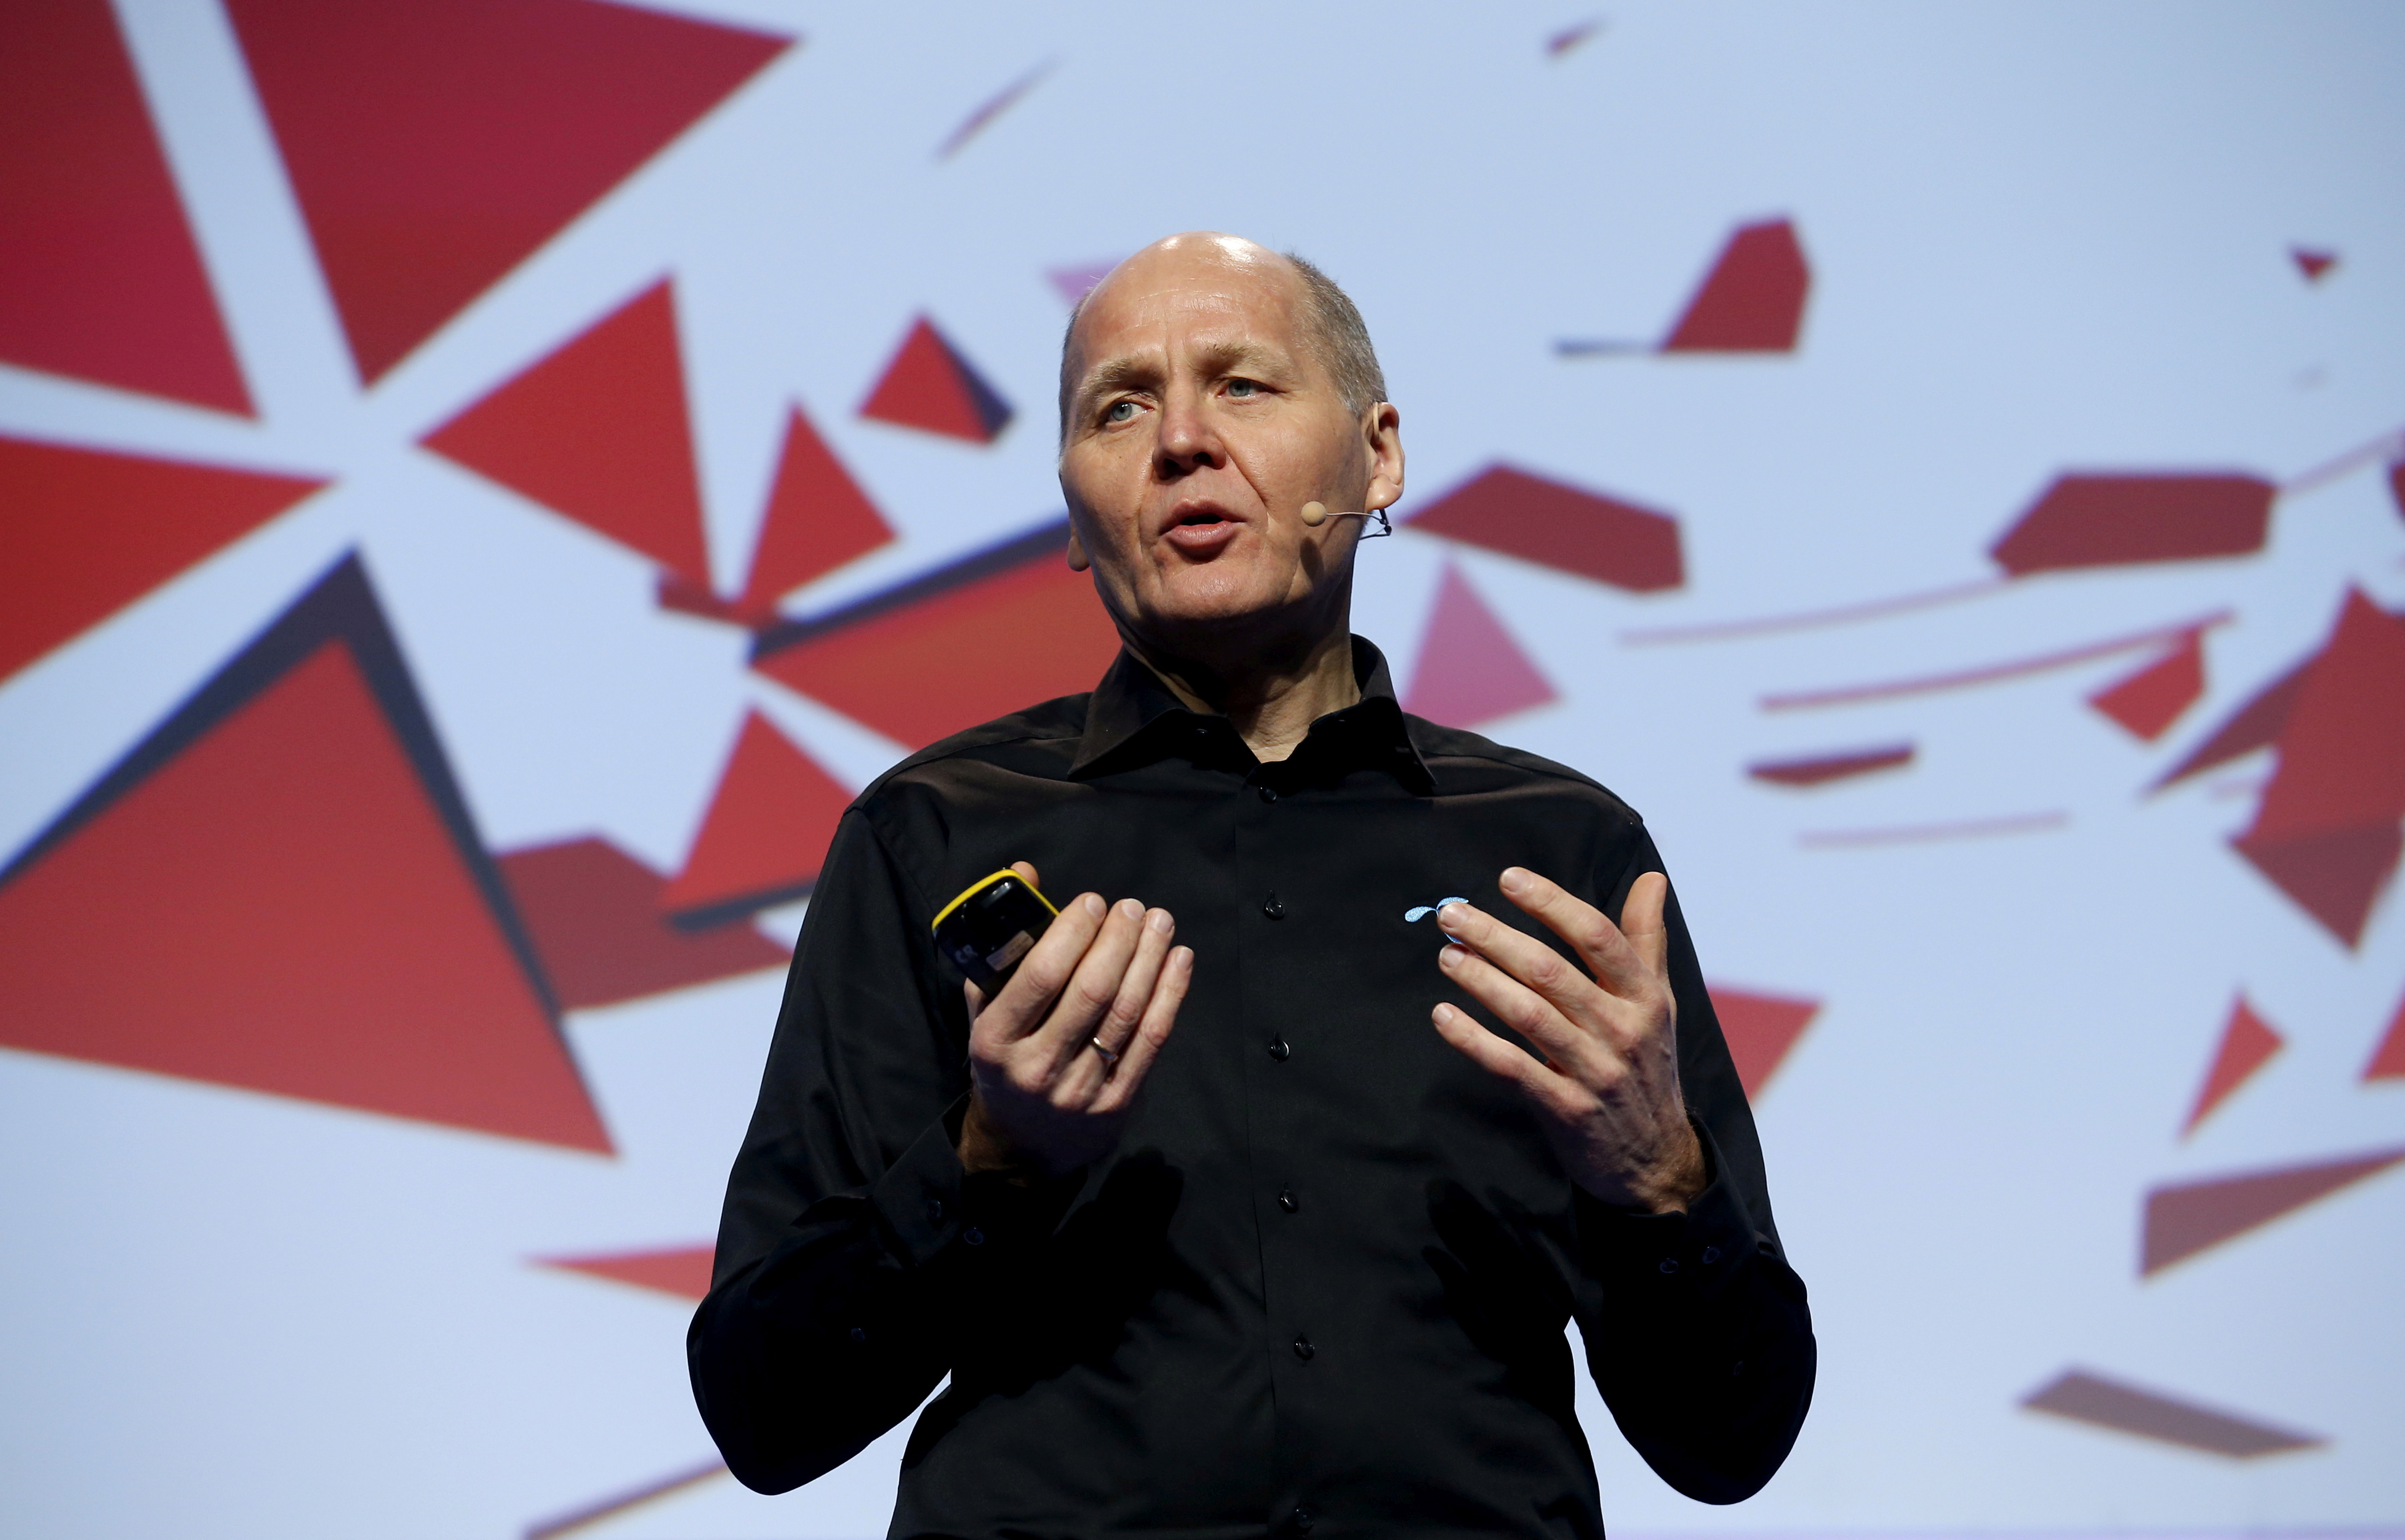 Sigve Brekke, President and CEO of Telenor, delivers a keynote speech during the Mobile World Congress in Barcelona, Spain February 23, 2016. REUTERS/Albert Gea/File Photo